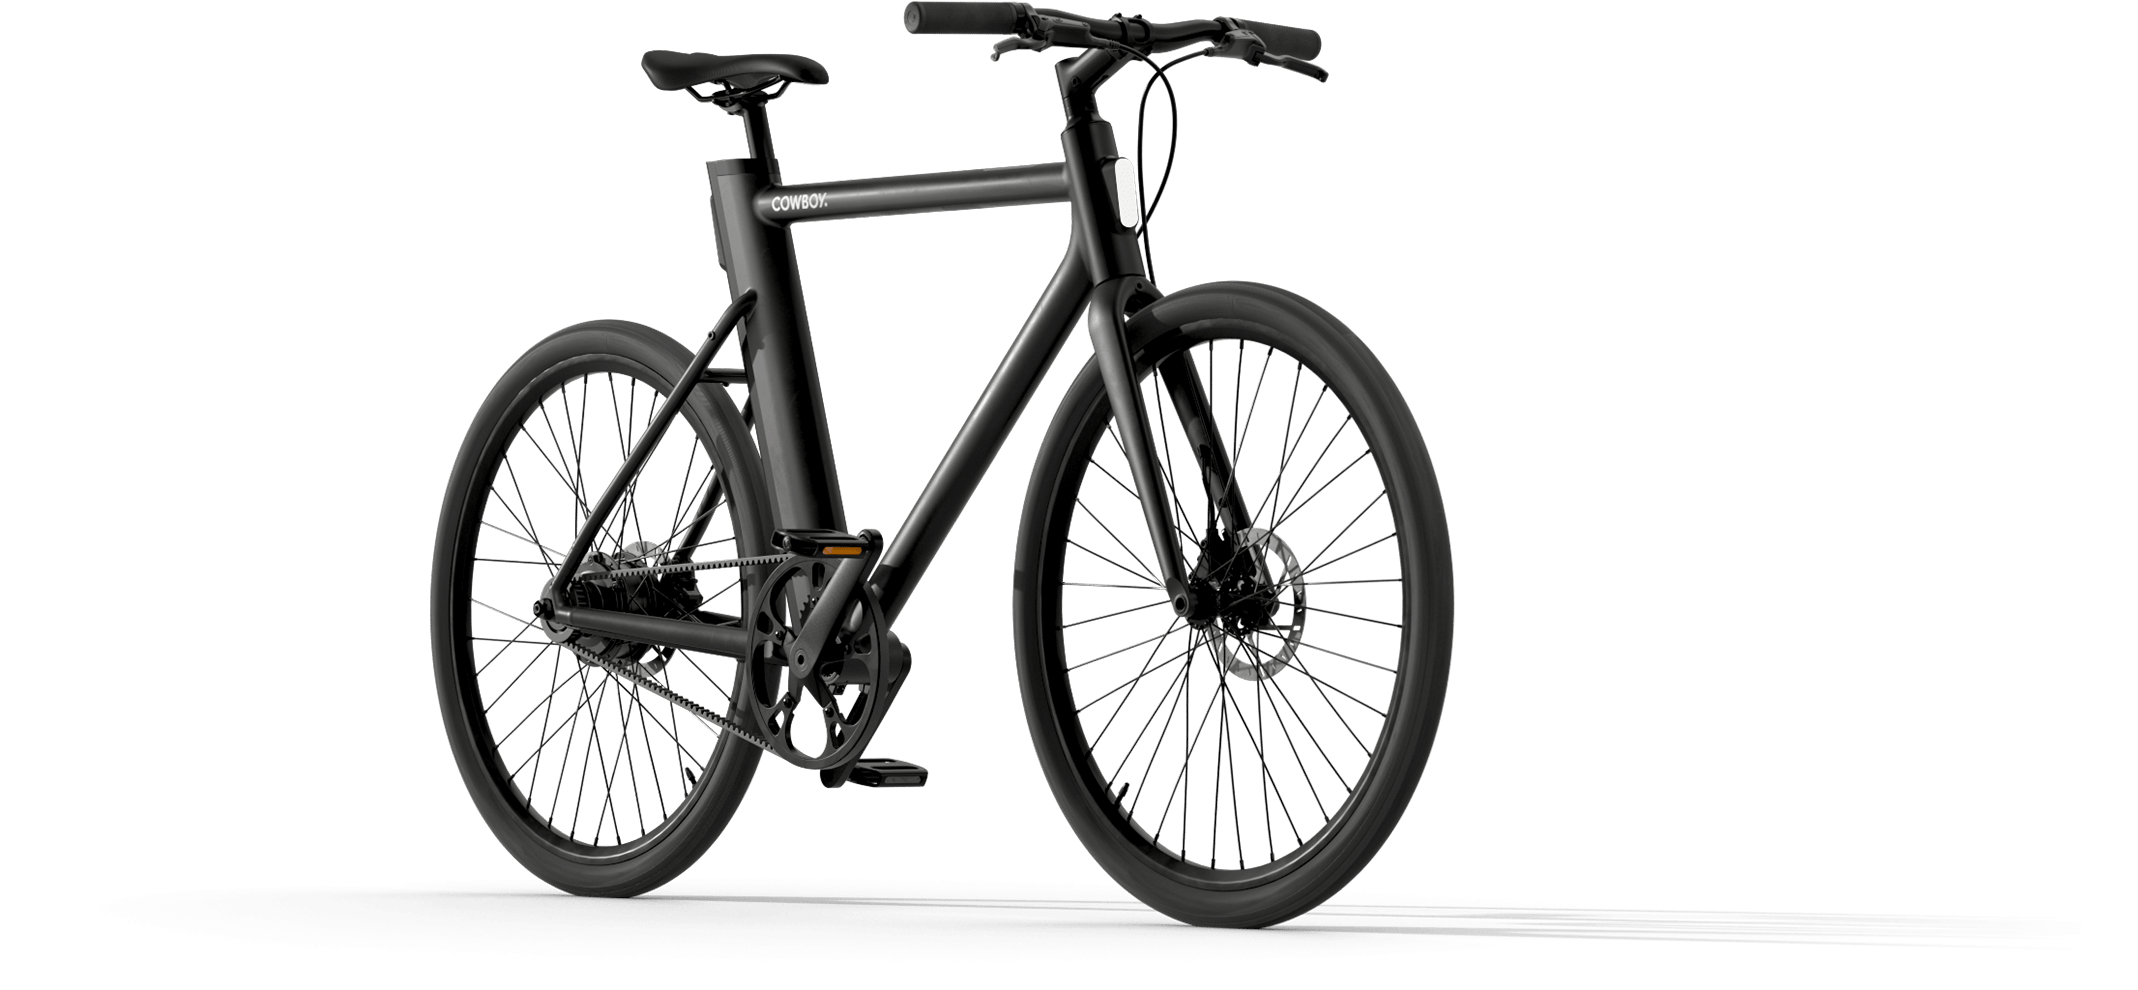 Cowboy E-Bike - Take The Streets